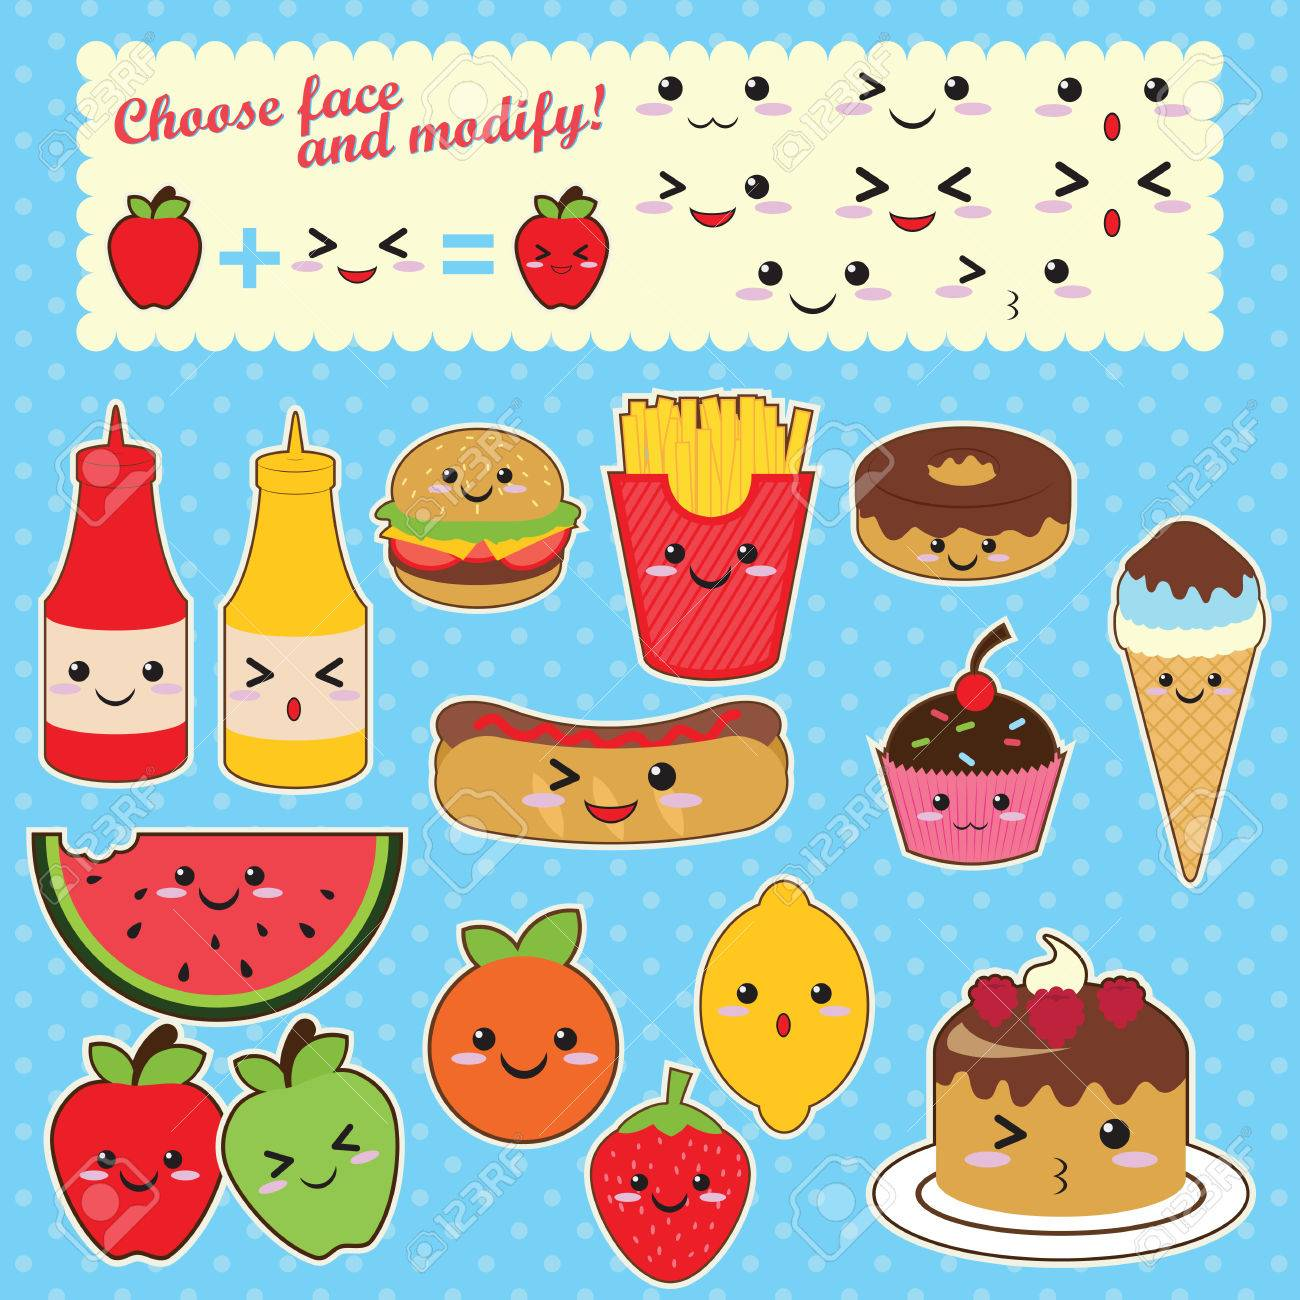 Cute Gluco Food by *analage on deviantART | kawaii | Pinterest ...